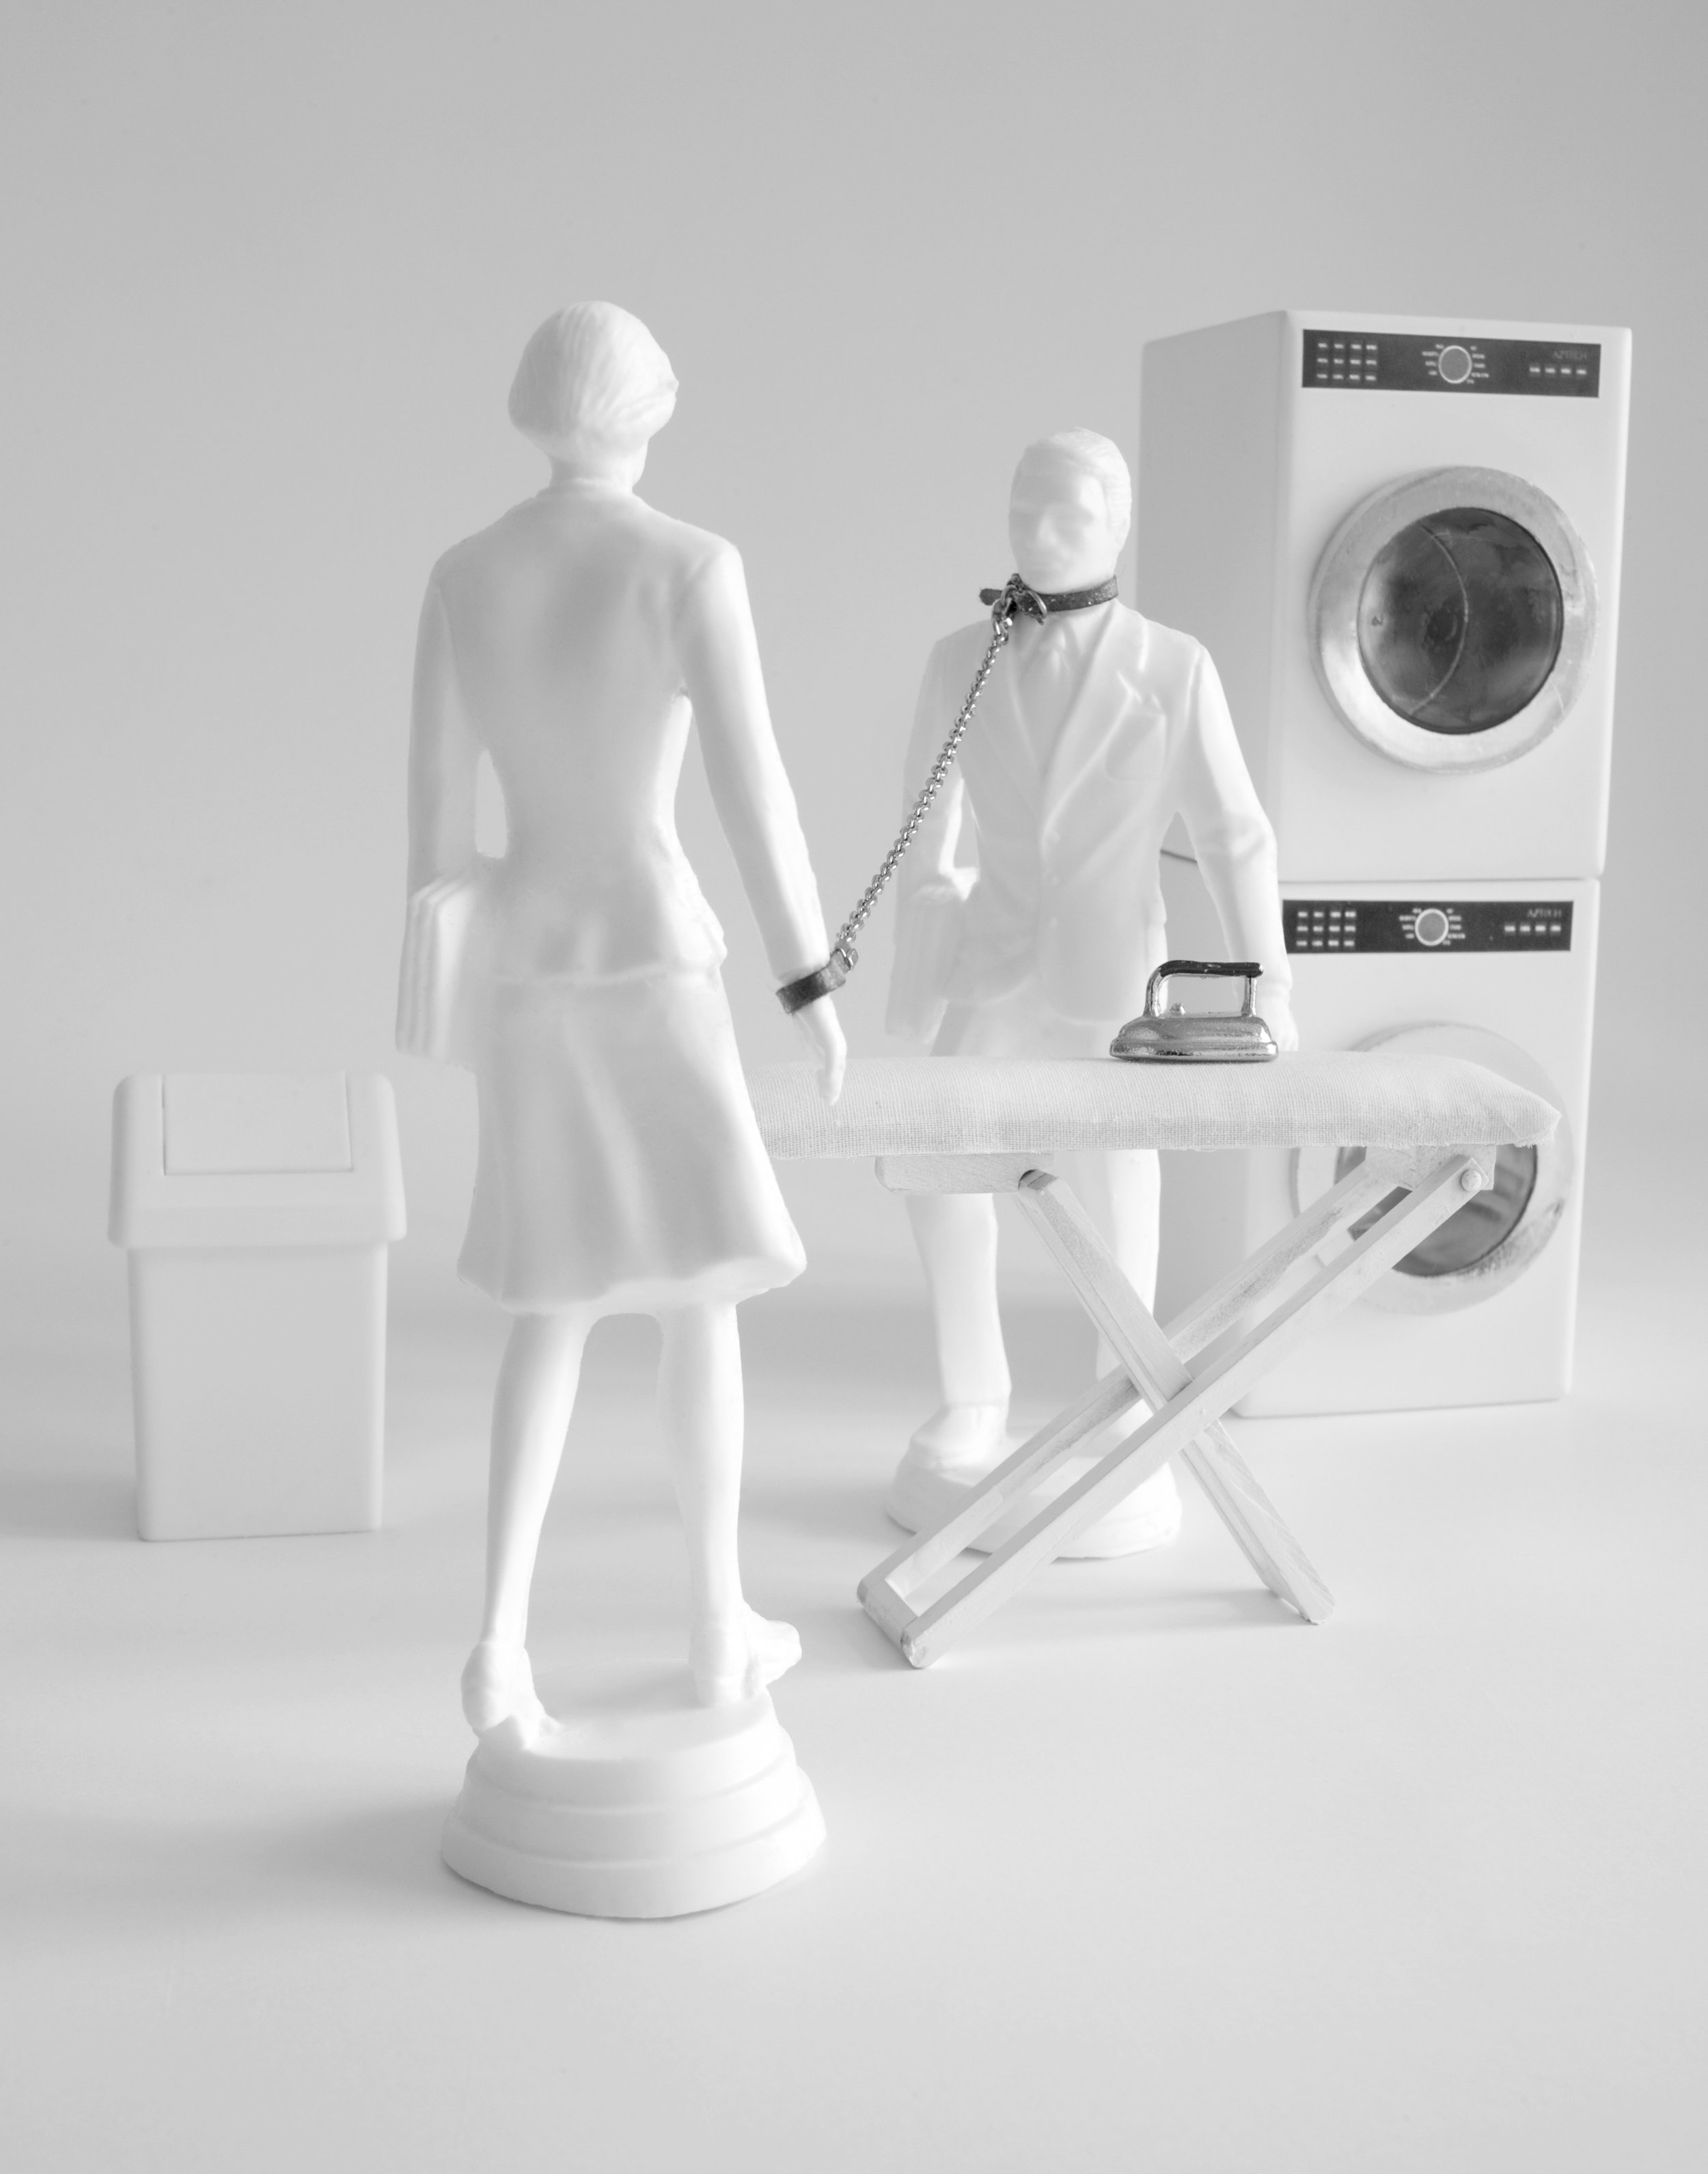 Dirty Laundry Secrets , 2010  Photograph in archival ink on rag paper  26 x 32 inches   Dirty Laundry Secrets  centers two anonymous white figures, a man and a woman, poised for a standoff in their laundry room environment. A chain runs from a cuff around the woman's wrist to a similar cuff wrapped around the man's neck. An ironing board separates them, becoming a barrier from what seems to be a harshly antagonistic scene. The viewer is left to decide who in the scene is making the demands.